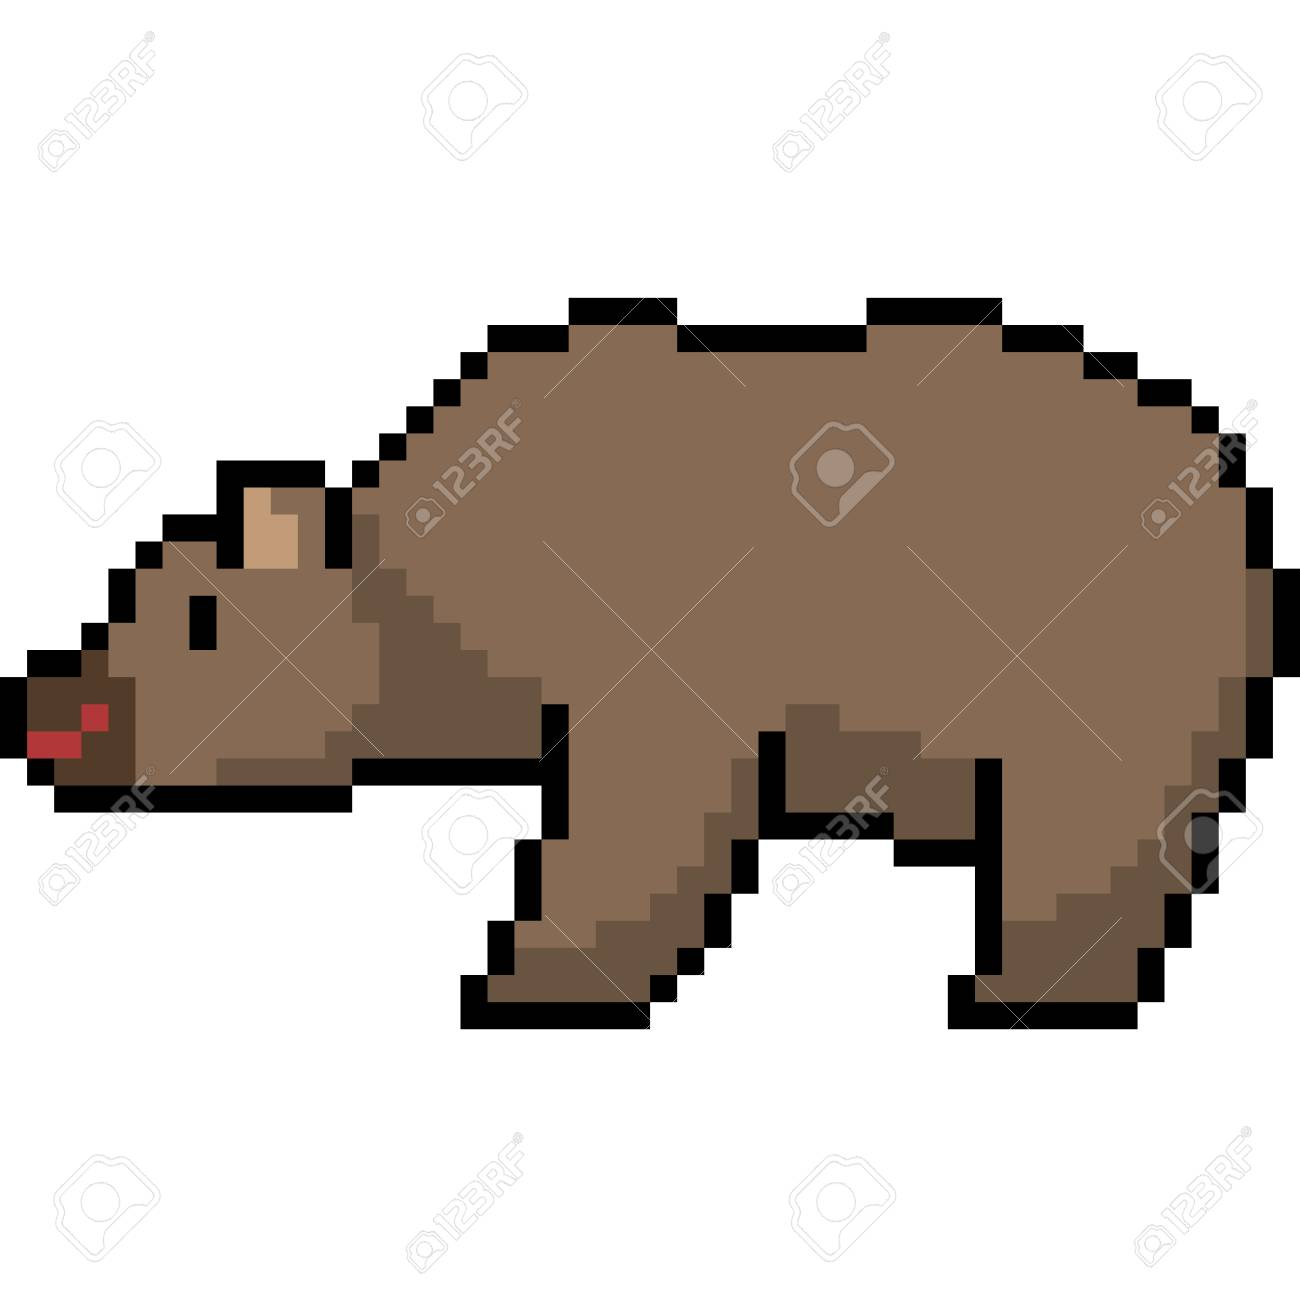 vector pixel art bear isolated royalty free cliparts vectors and